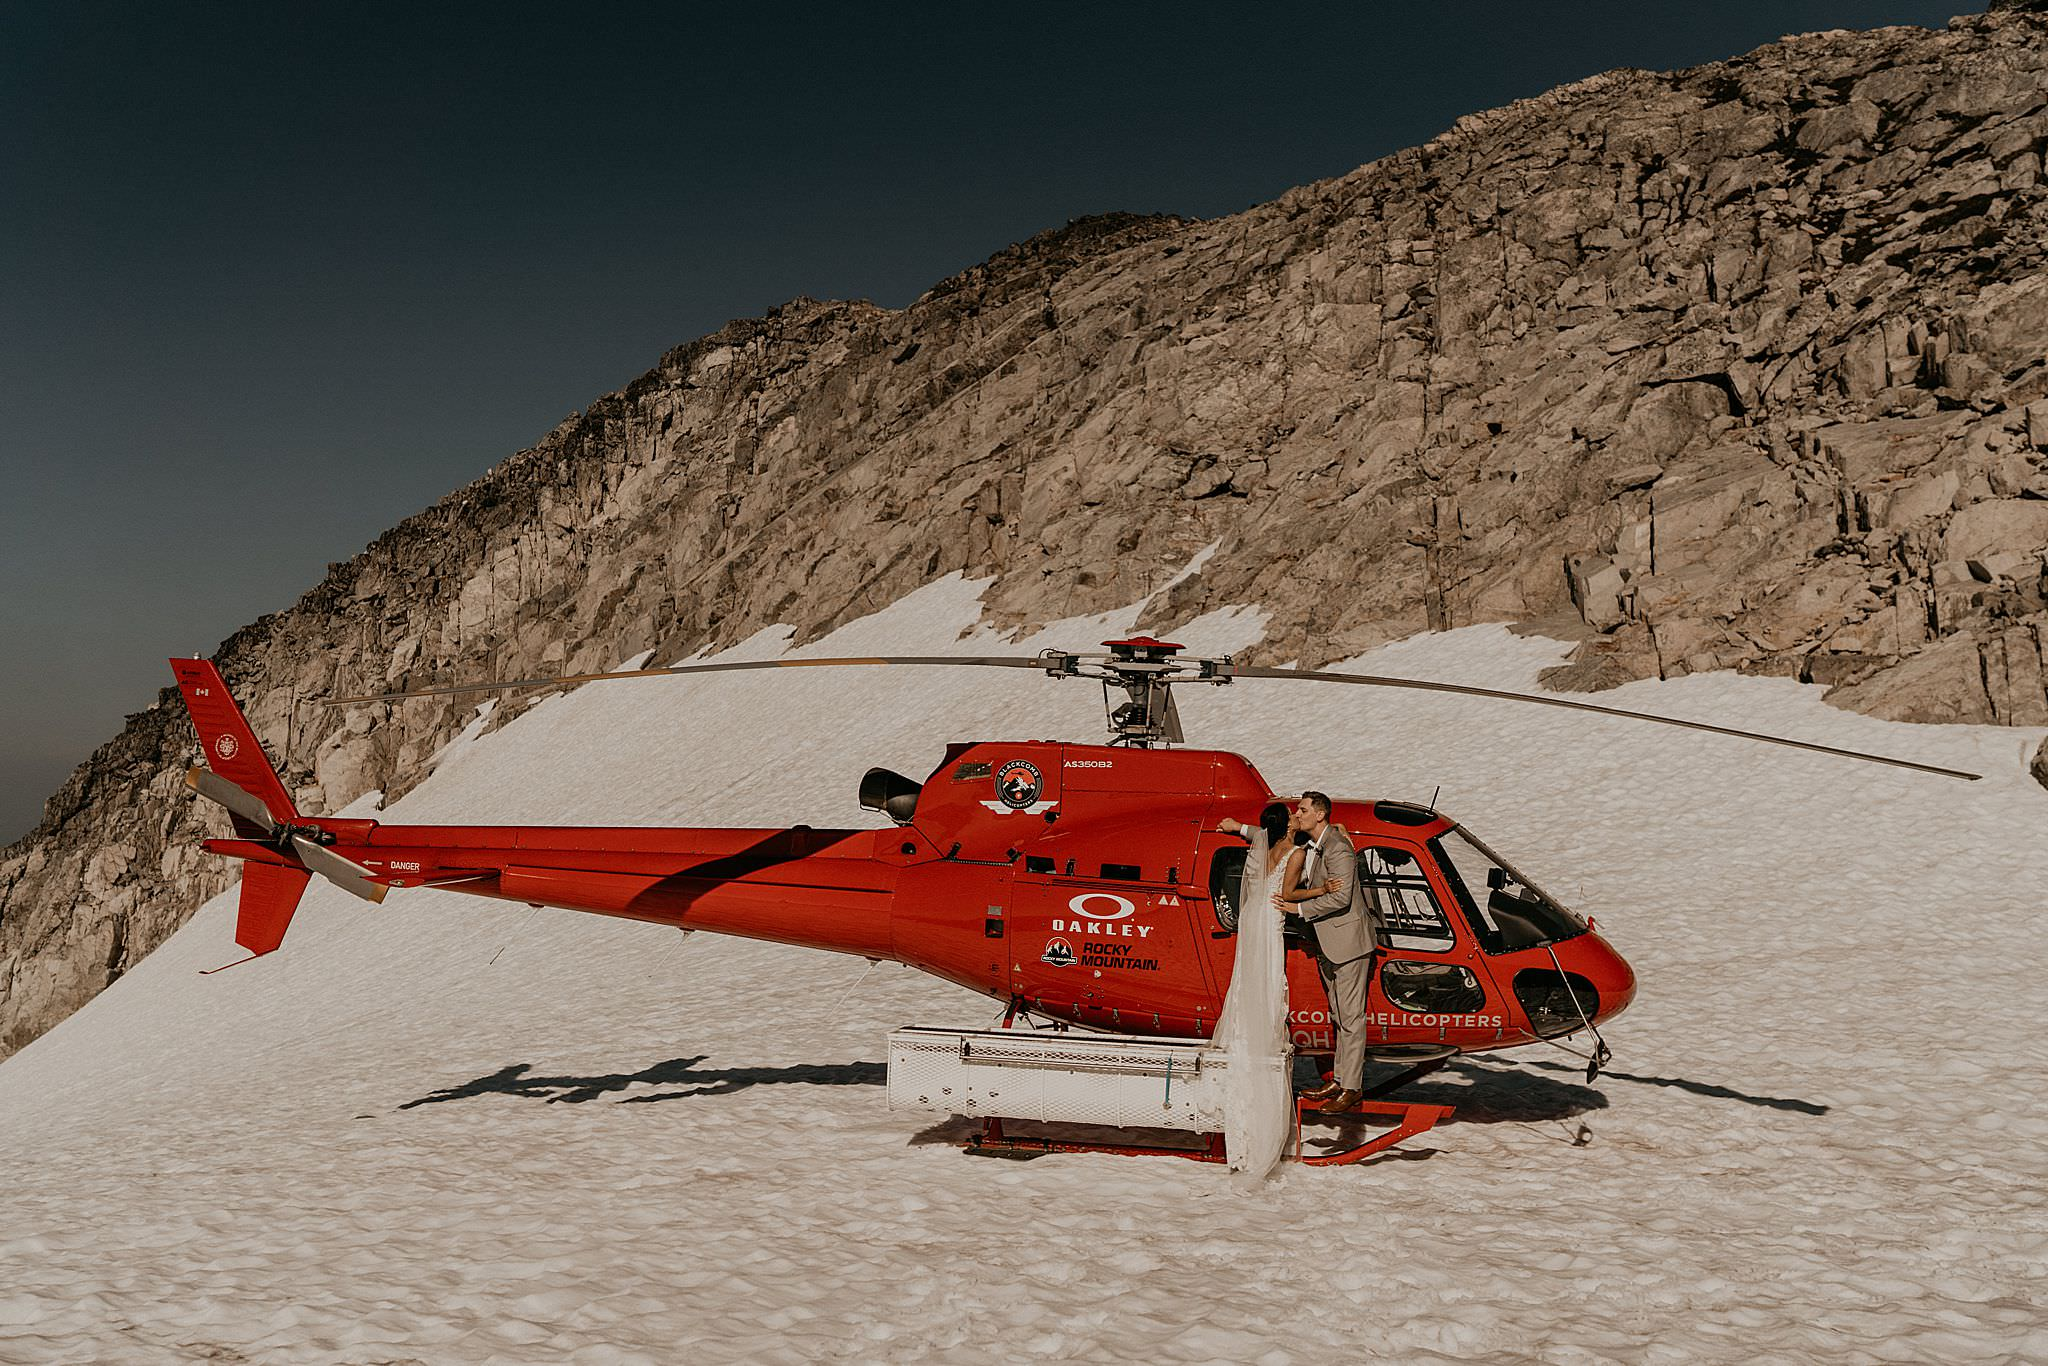 Blackcomb helicopter wedding whistler elopement